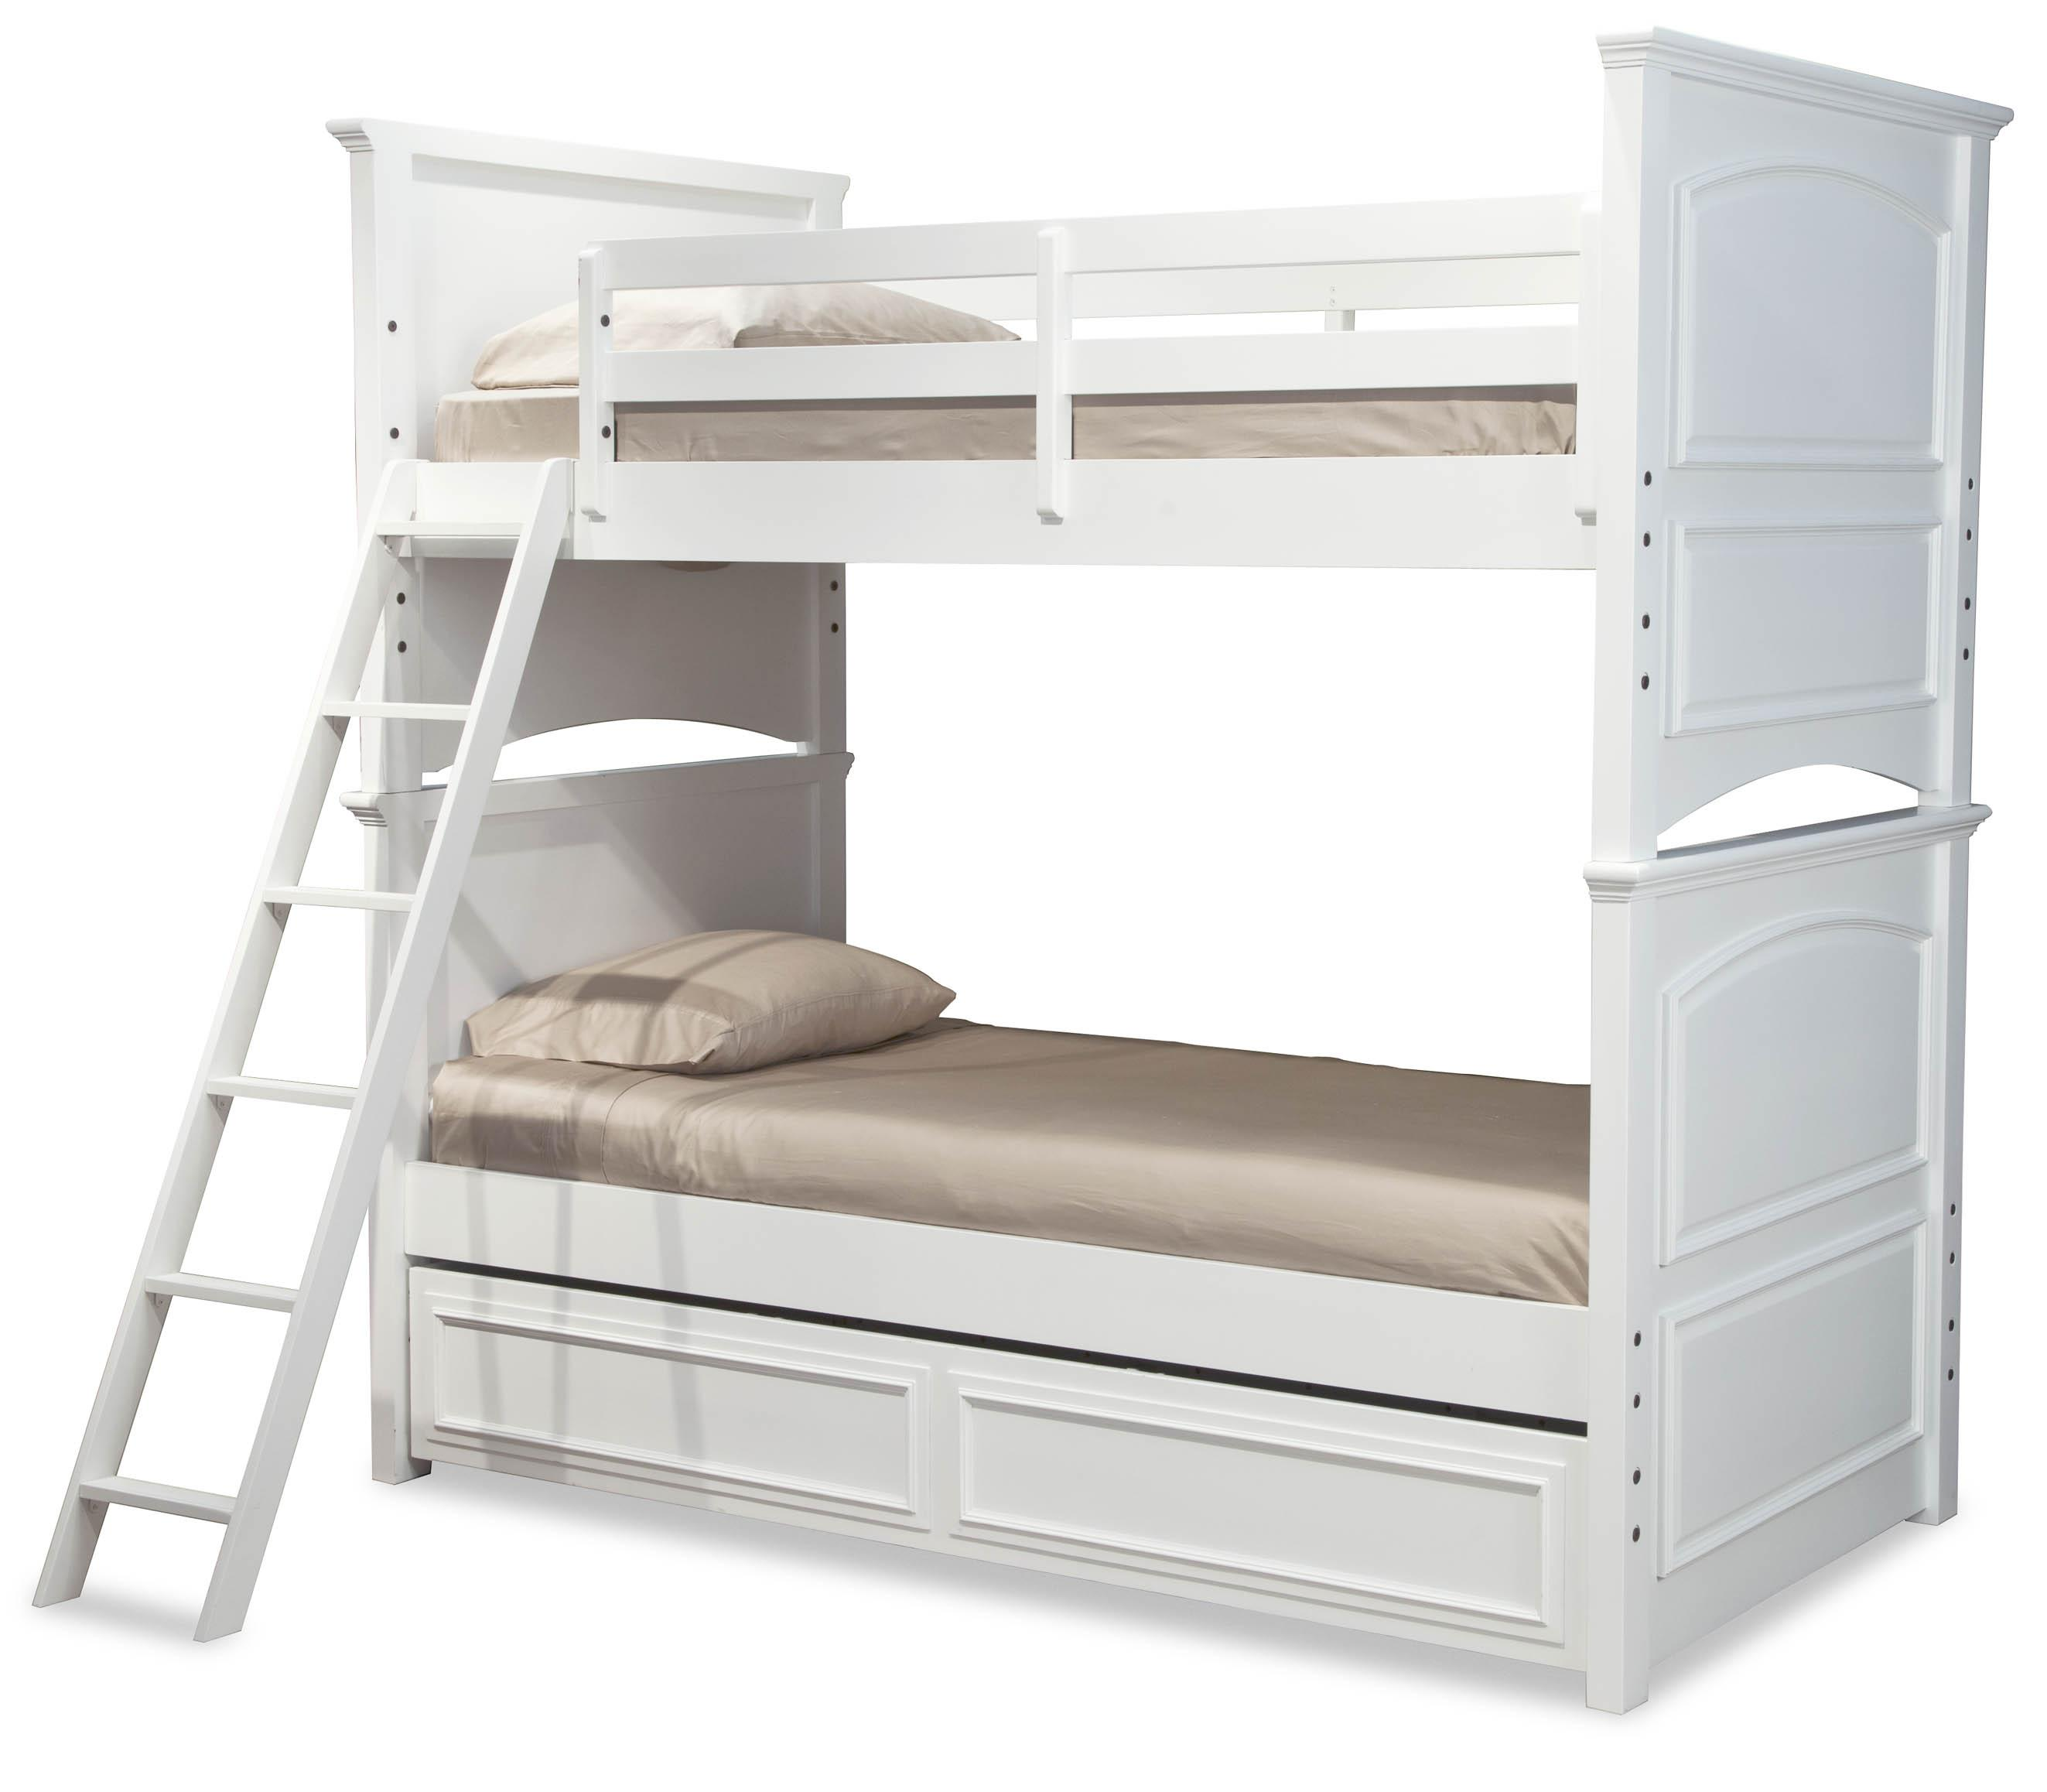 Legacy Classic Kids Madison Complete Twin over Full Bunk Bed w/ Trundle - Item Number: 2830-8106K+9500